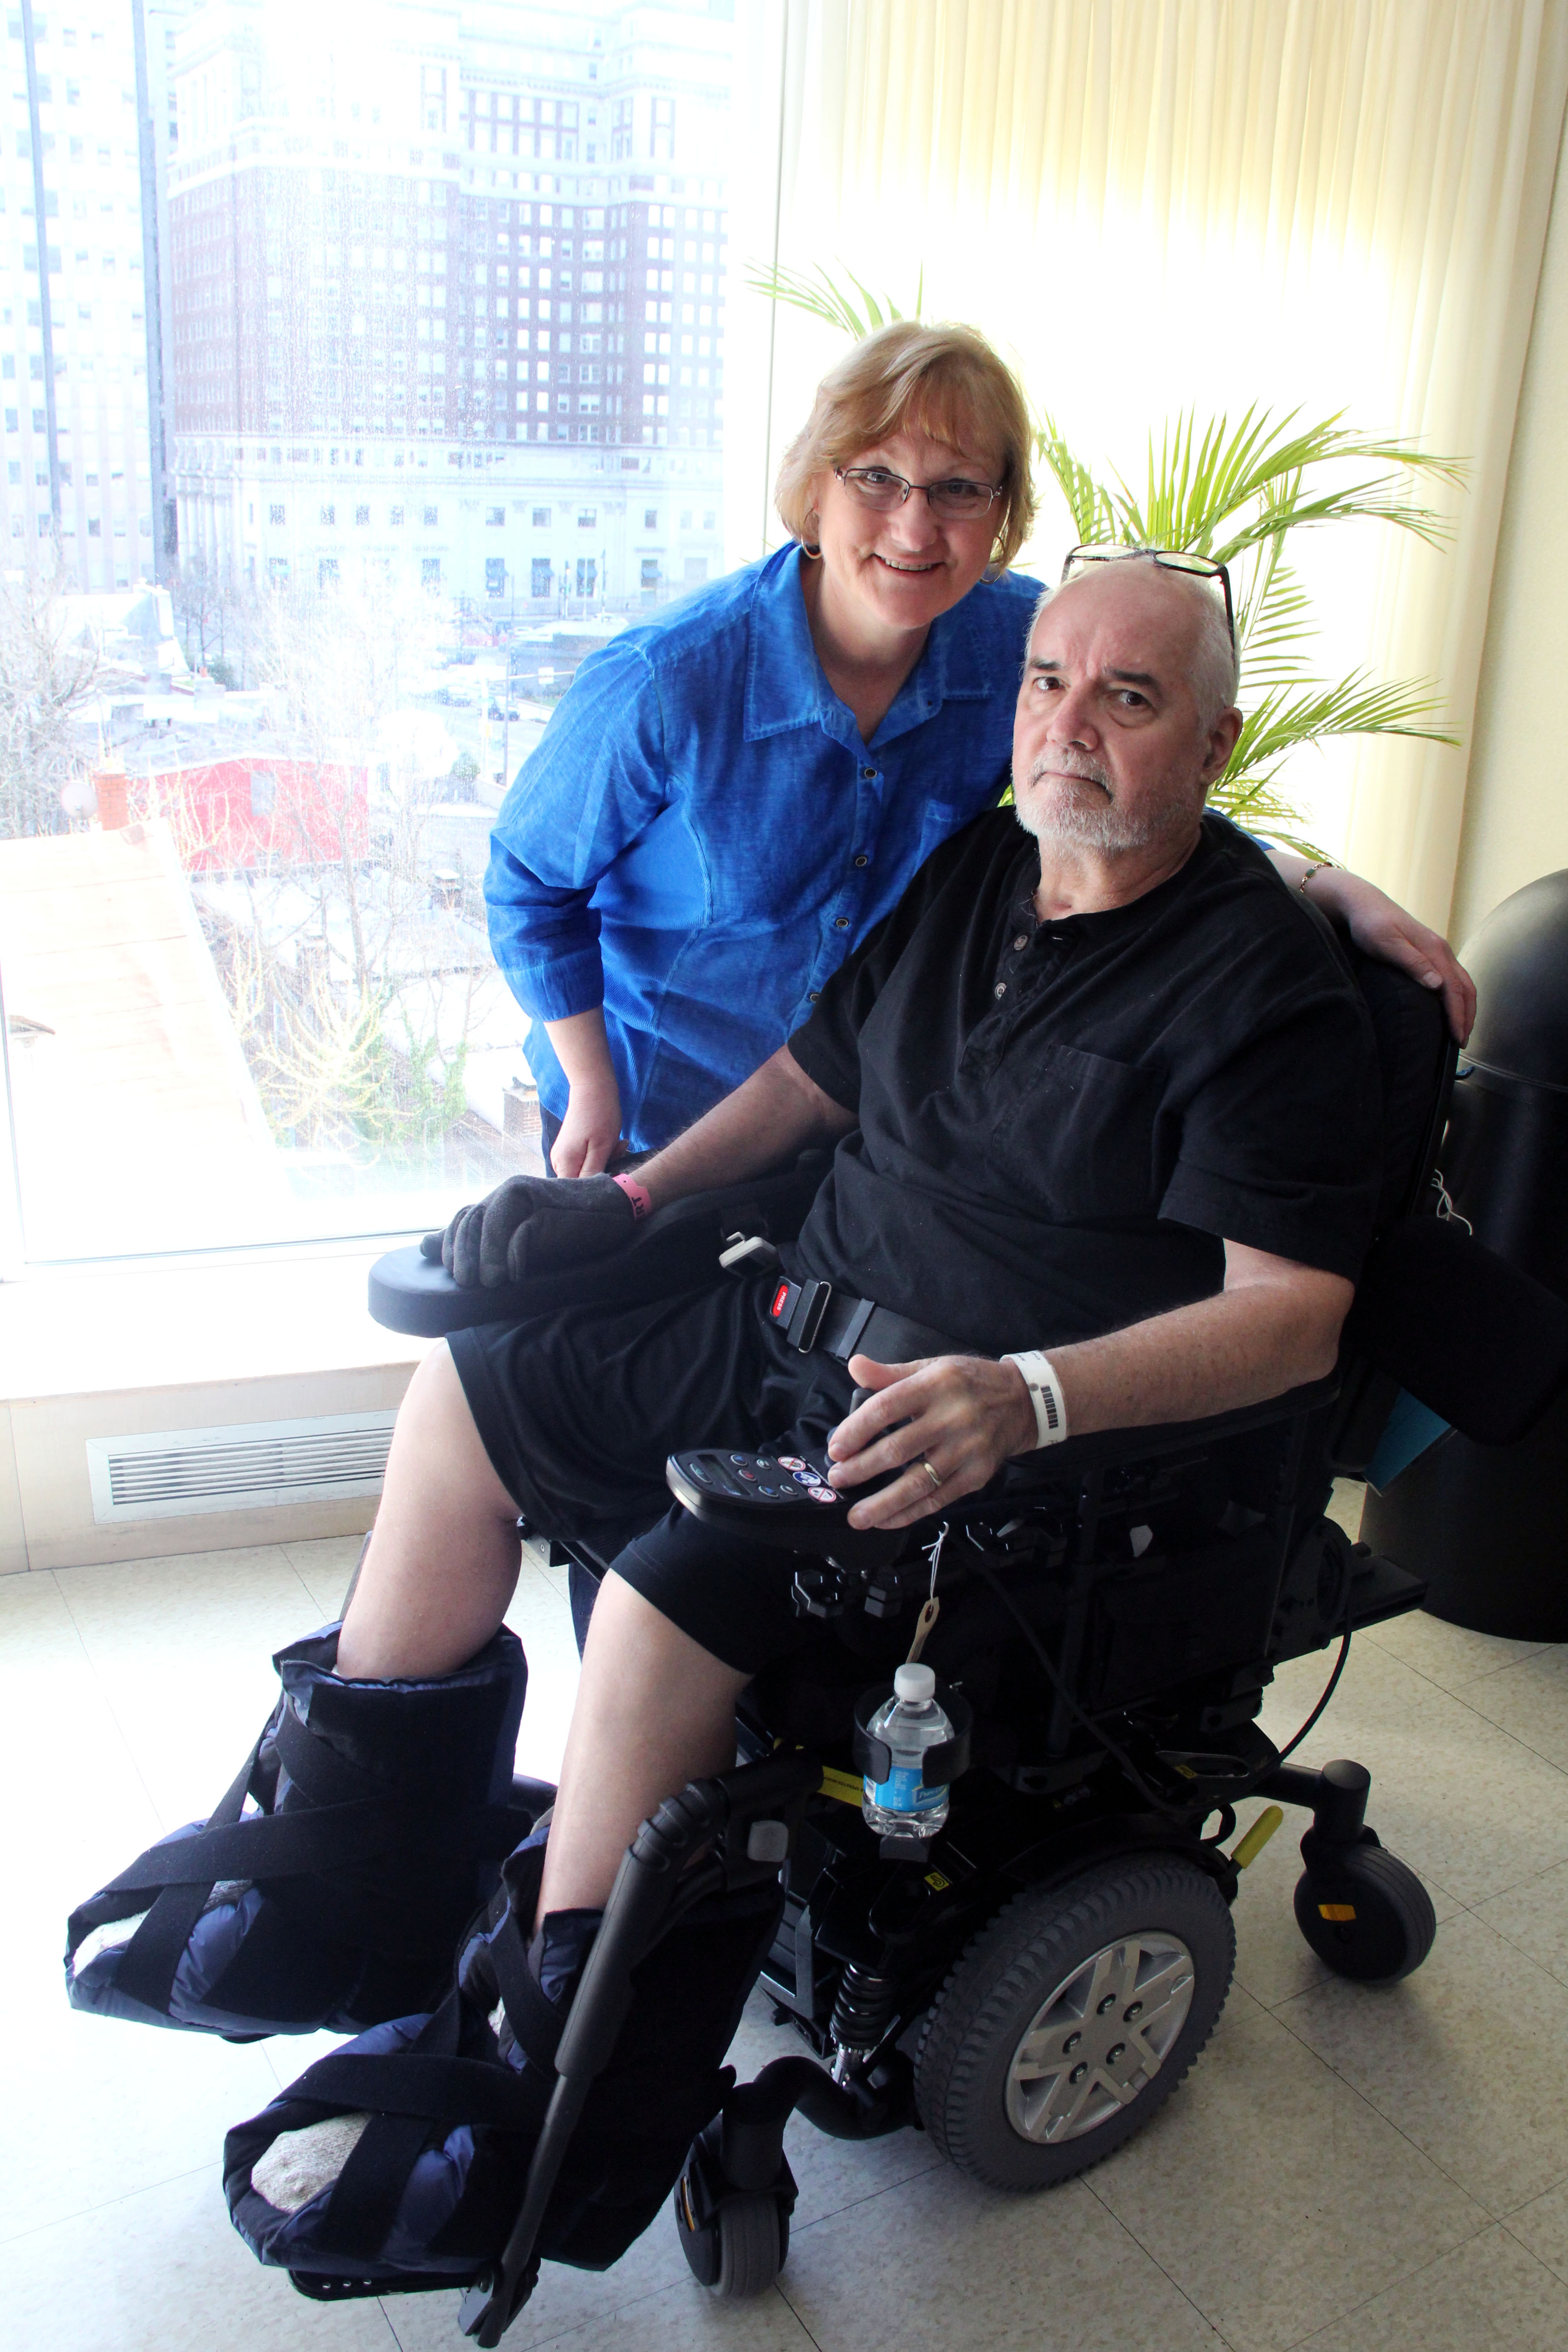 Tom at the Inpatient Rehab Center